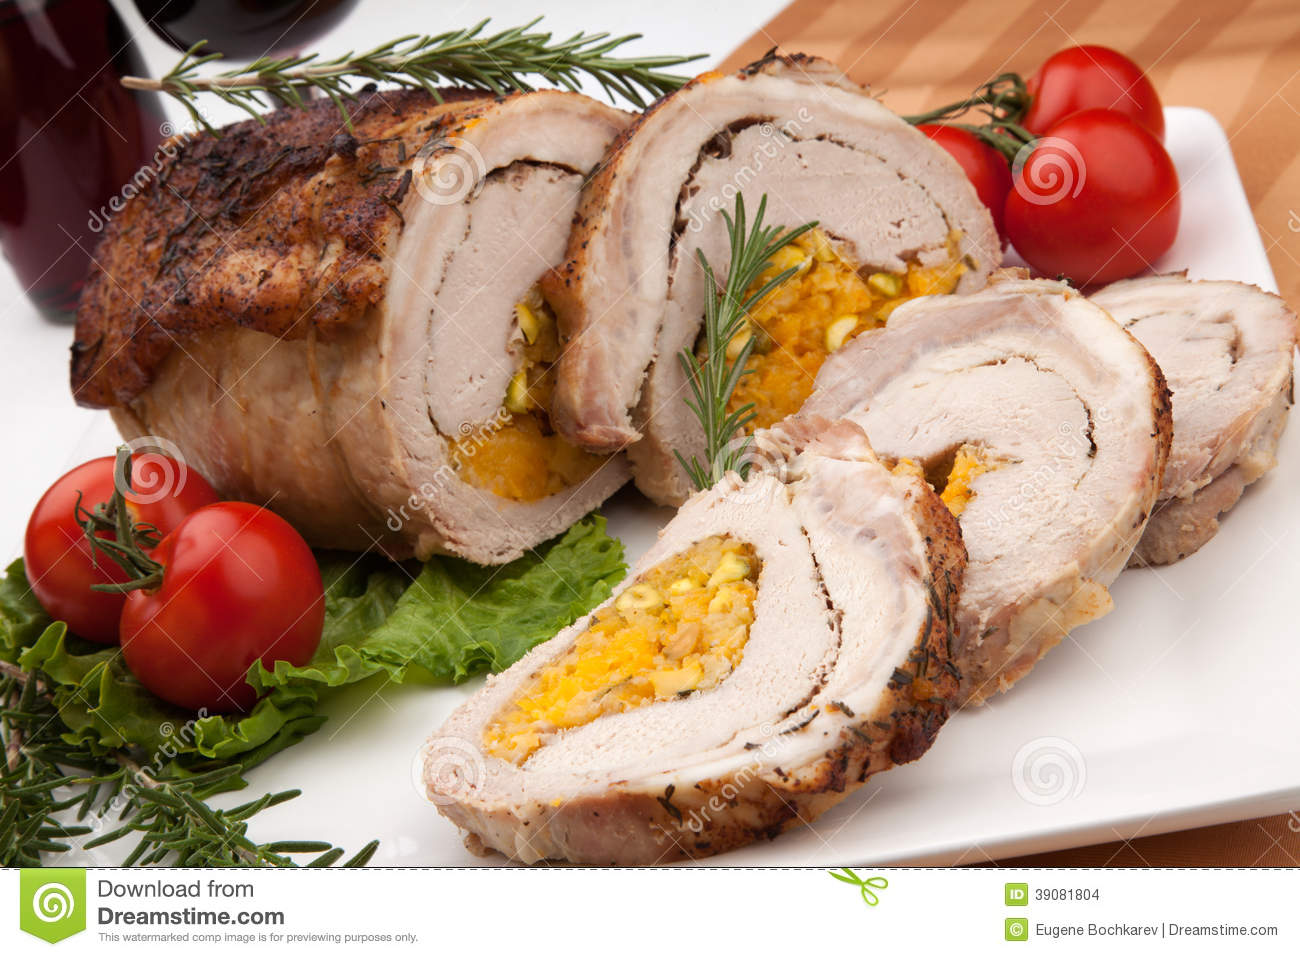 Pork roulade royalty free stock photography 33366947 - Choose best pork ...